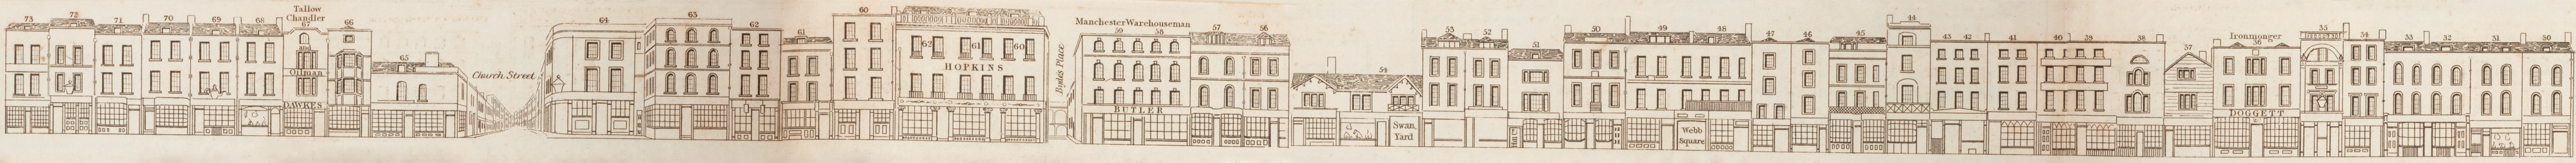 map - Tallis's London street views : No. 59. Shoreditch, division 2 (east)